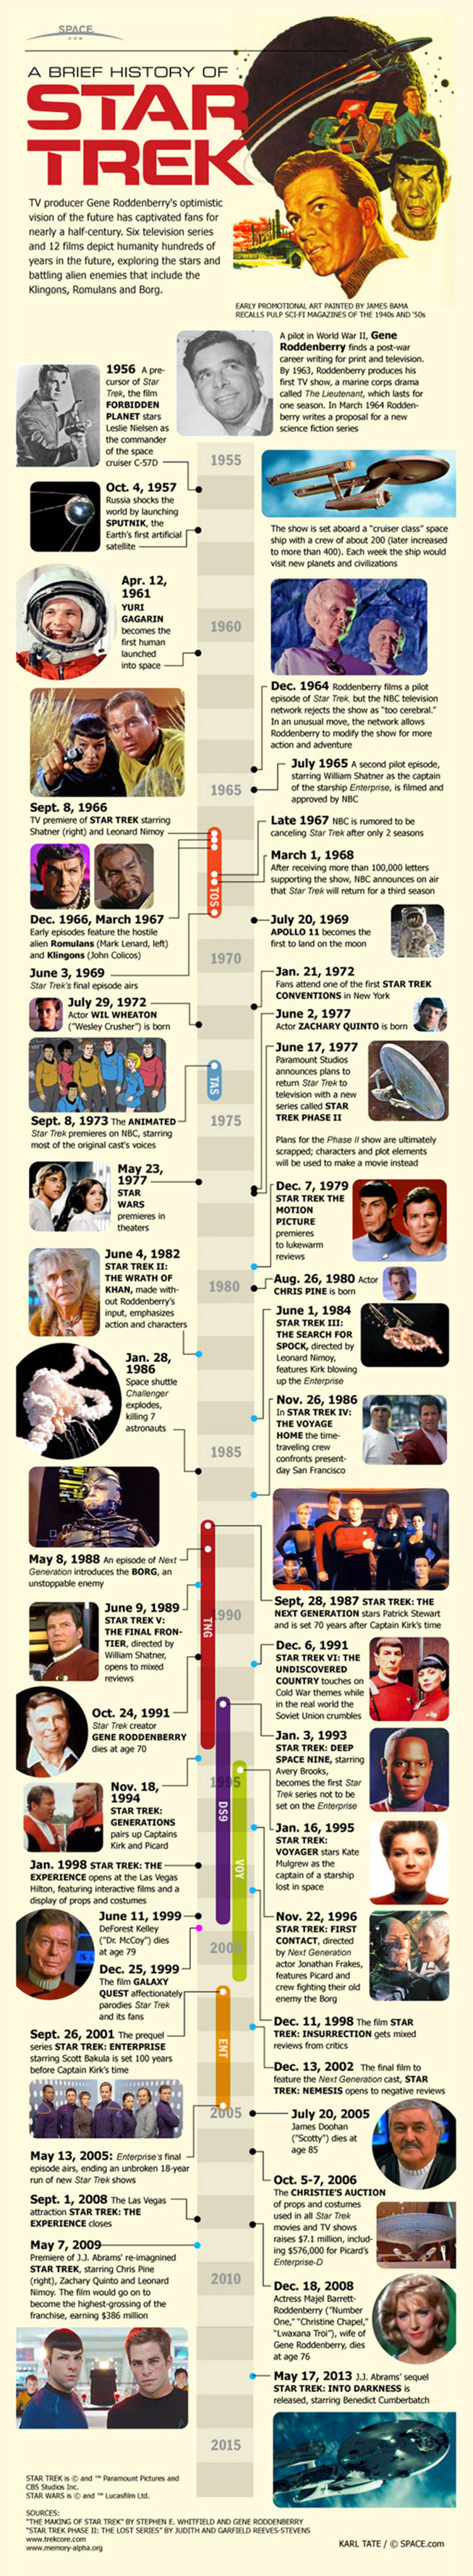 A Brief History of Star Trek Infographic